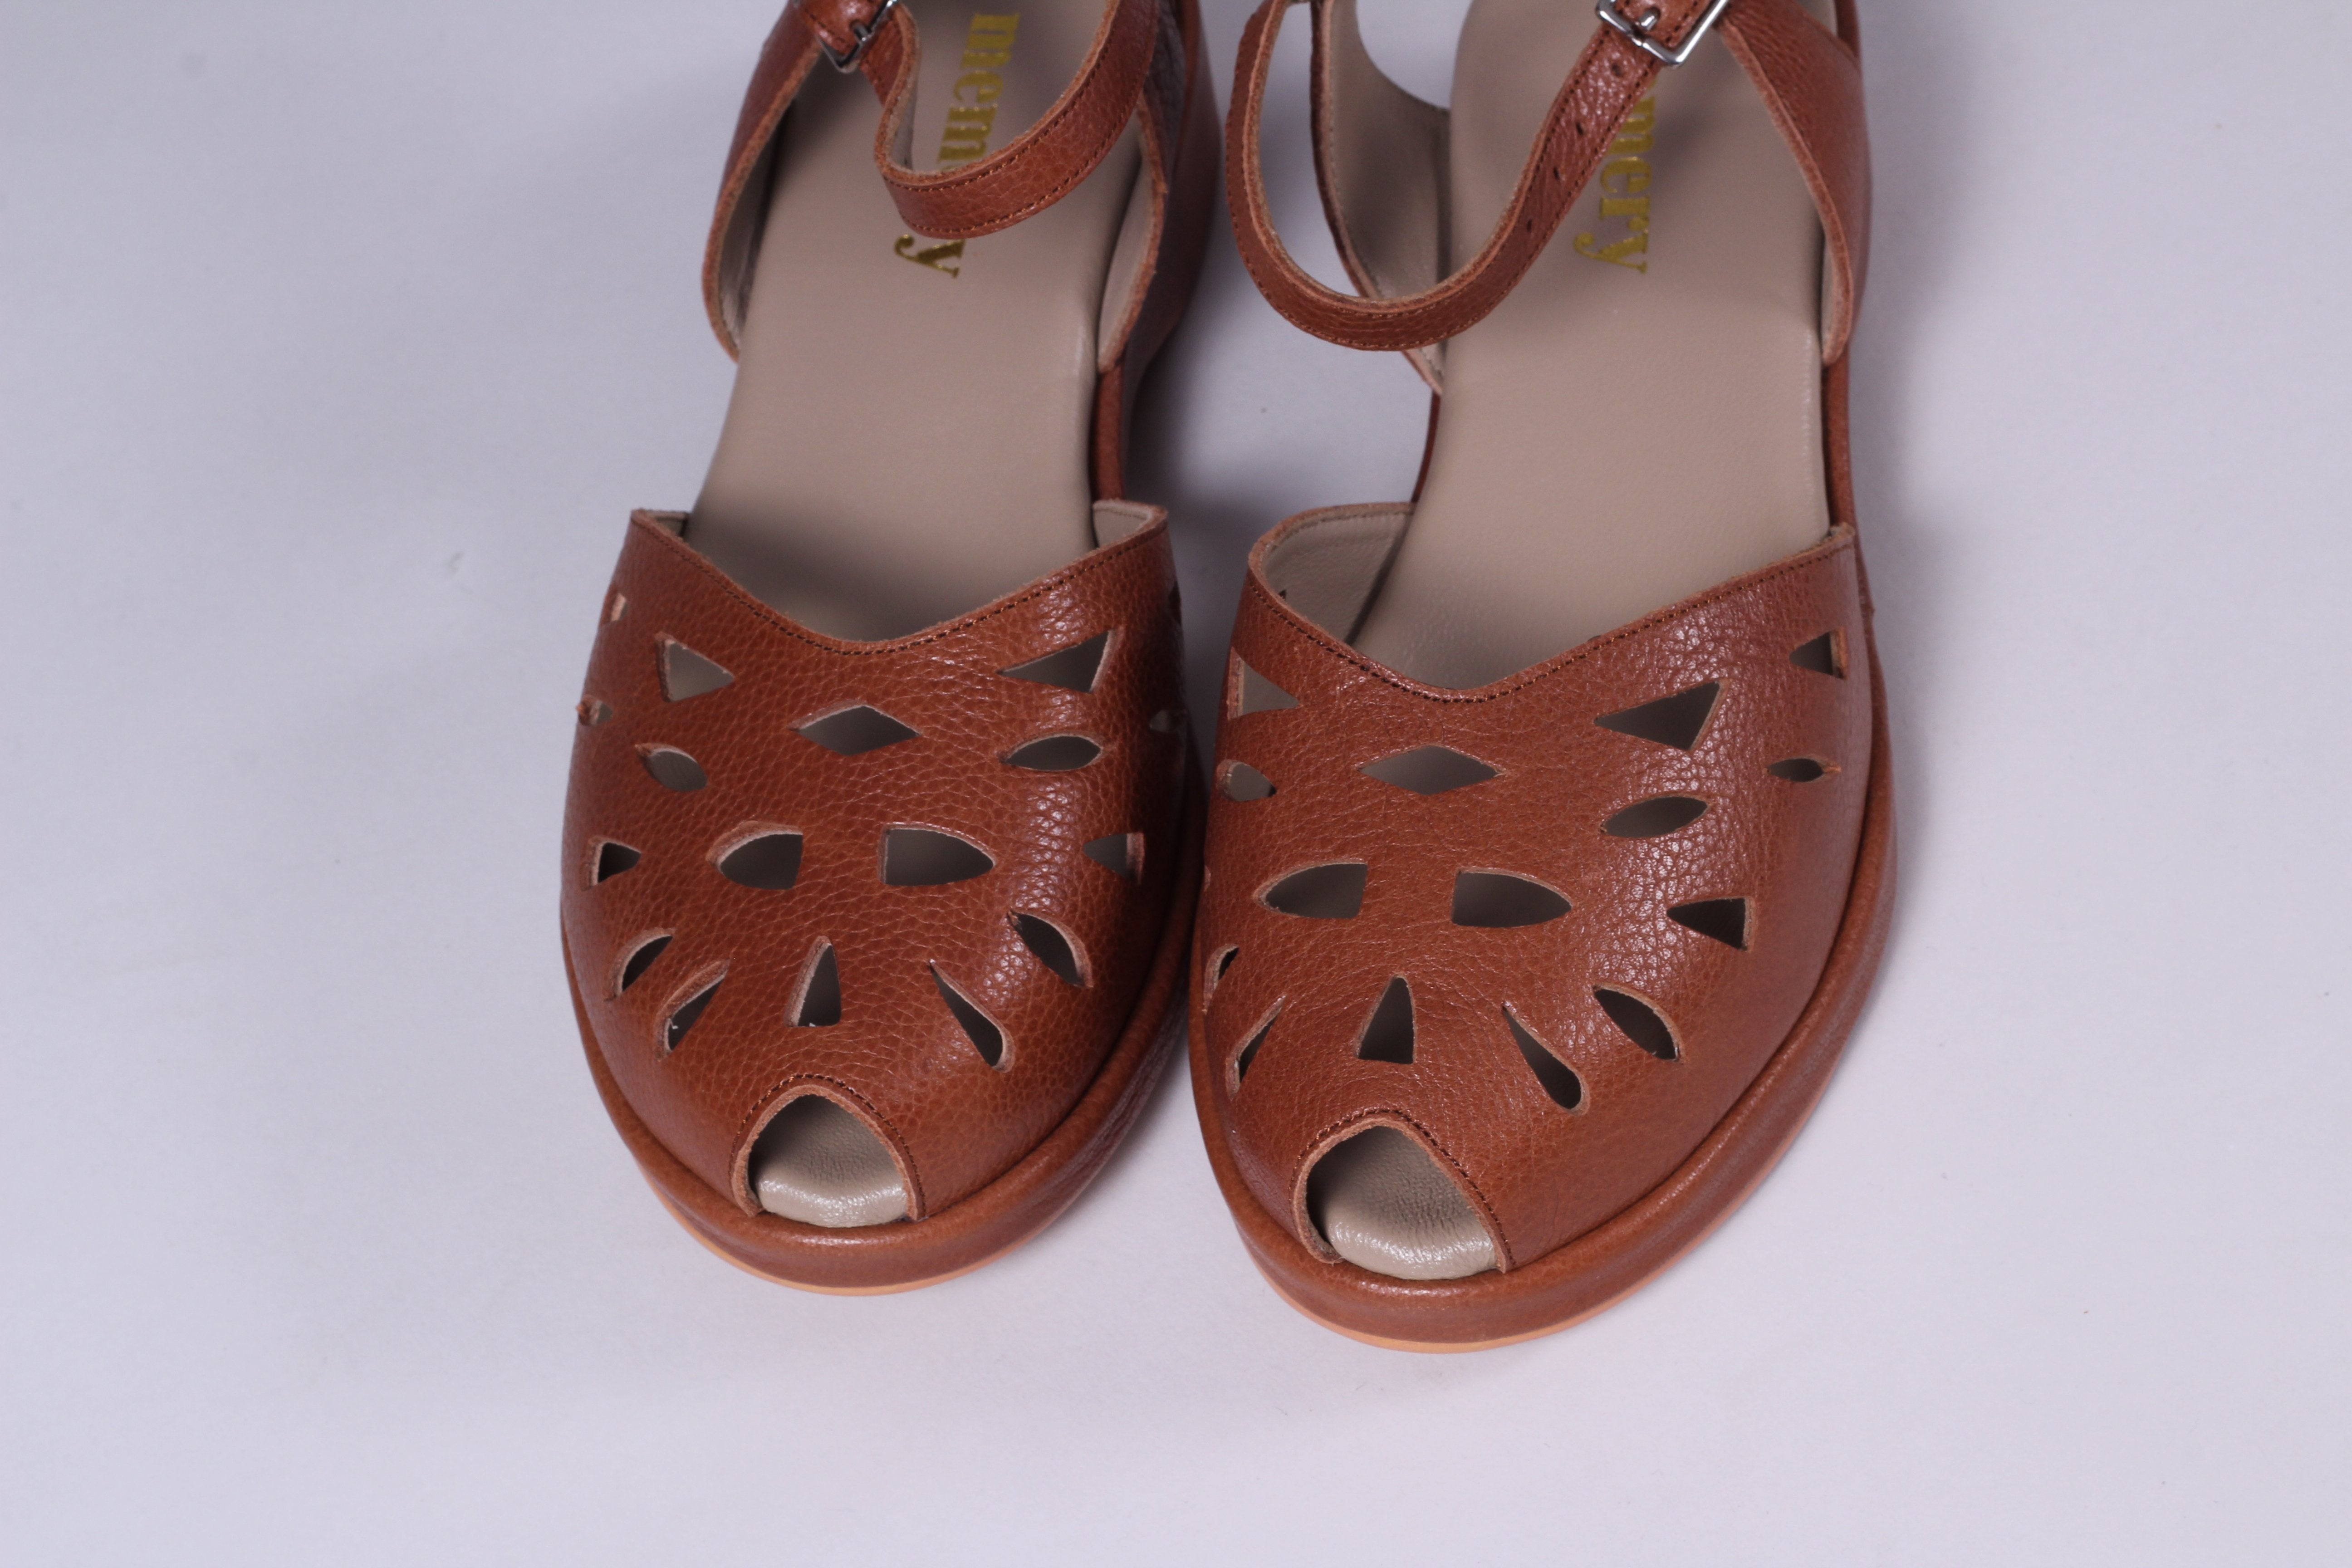 1940s / 50s style summer sandals /  wedges - Brown - Sidse